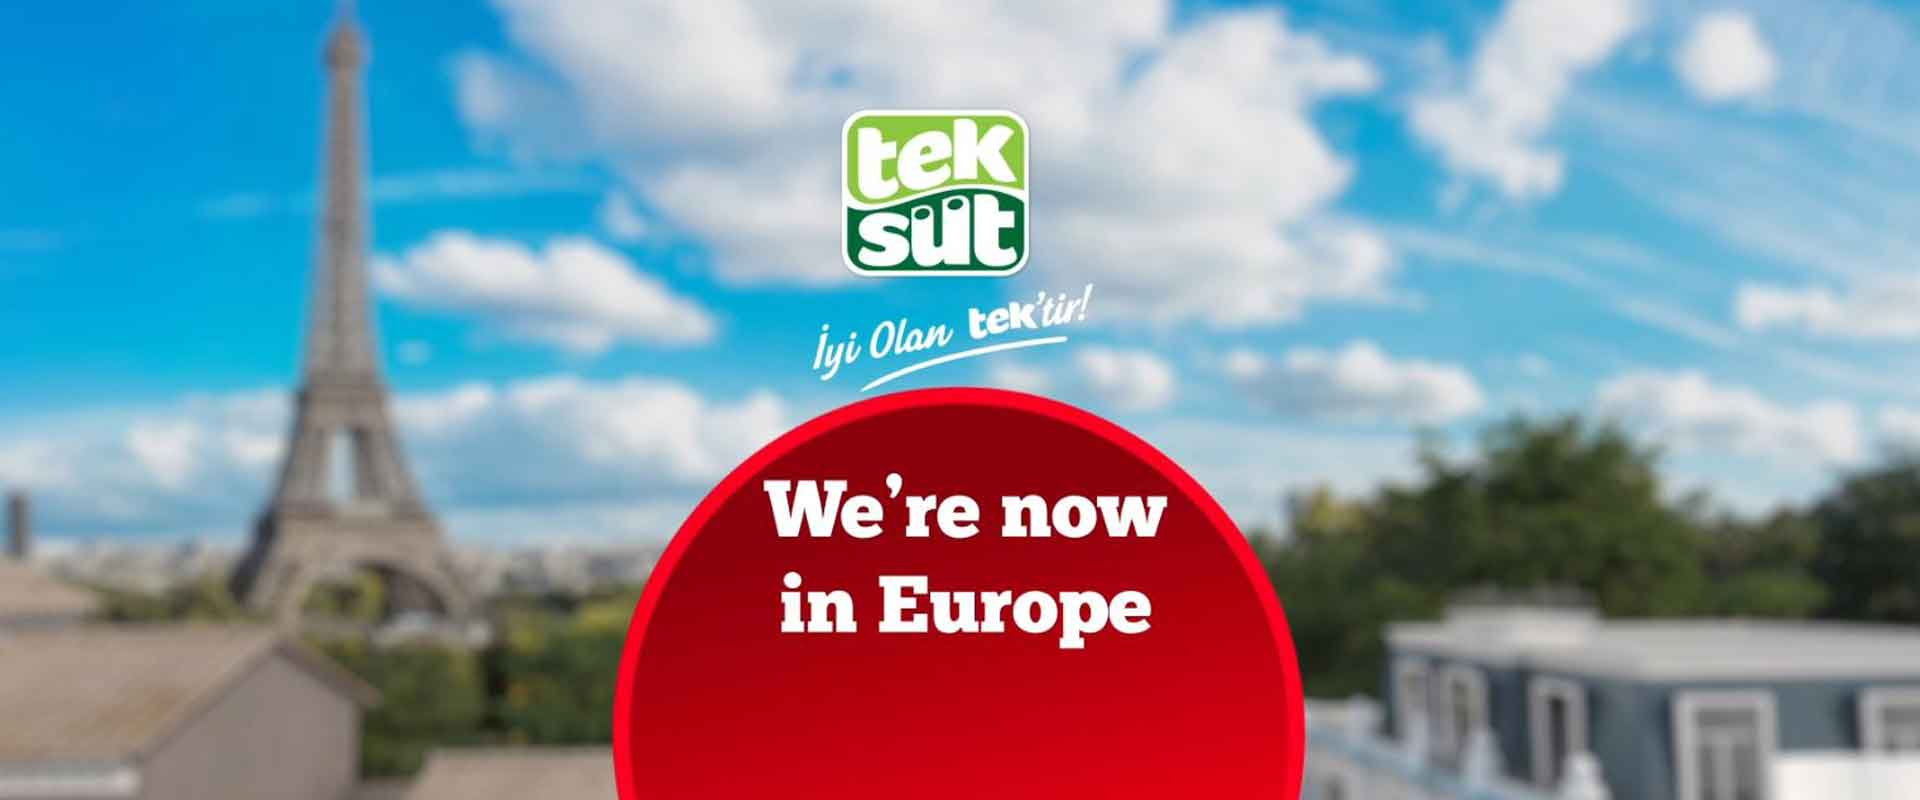 Teksut We're now in Europe